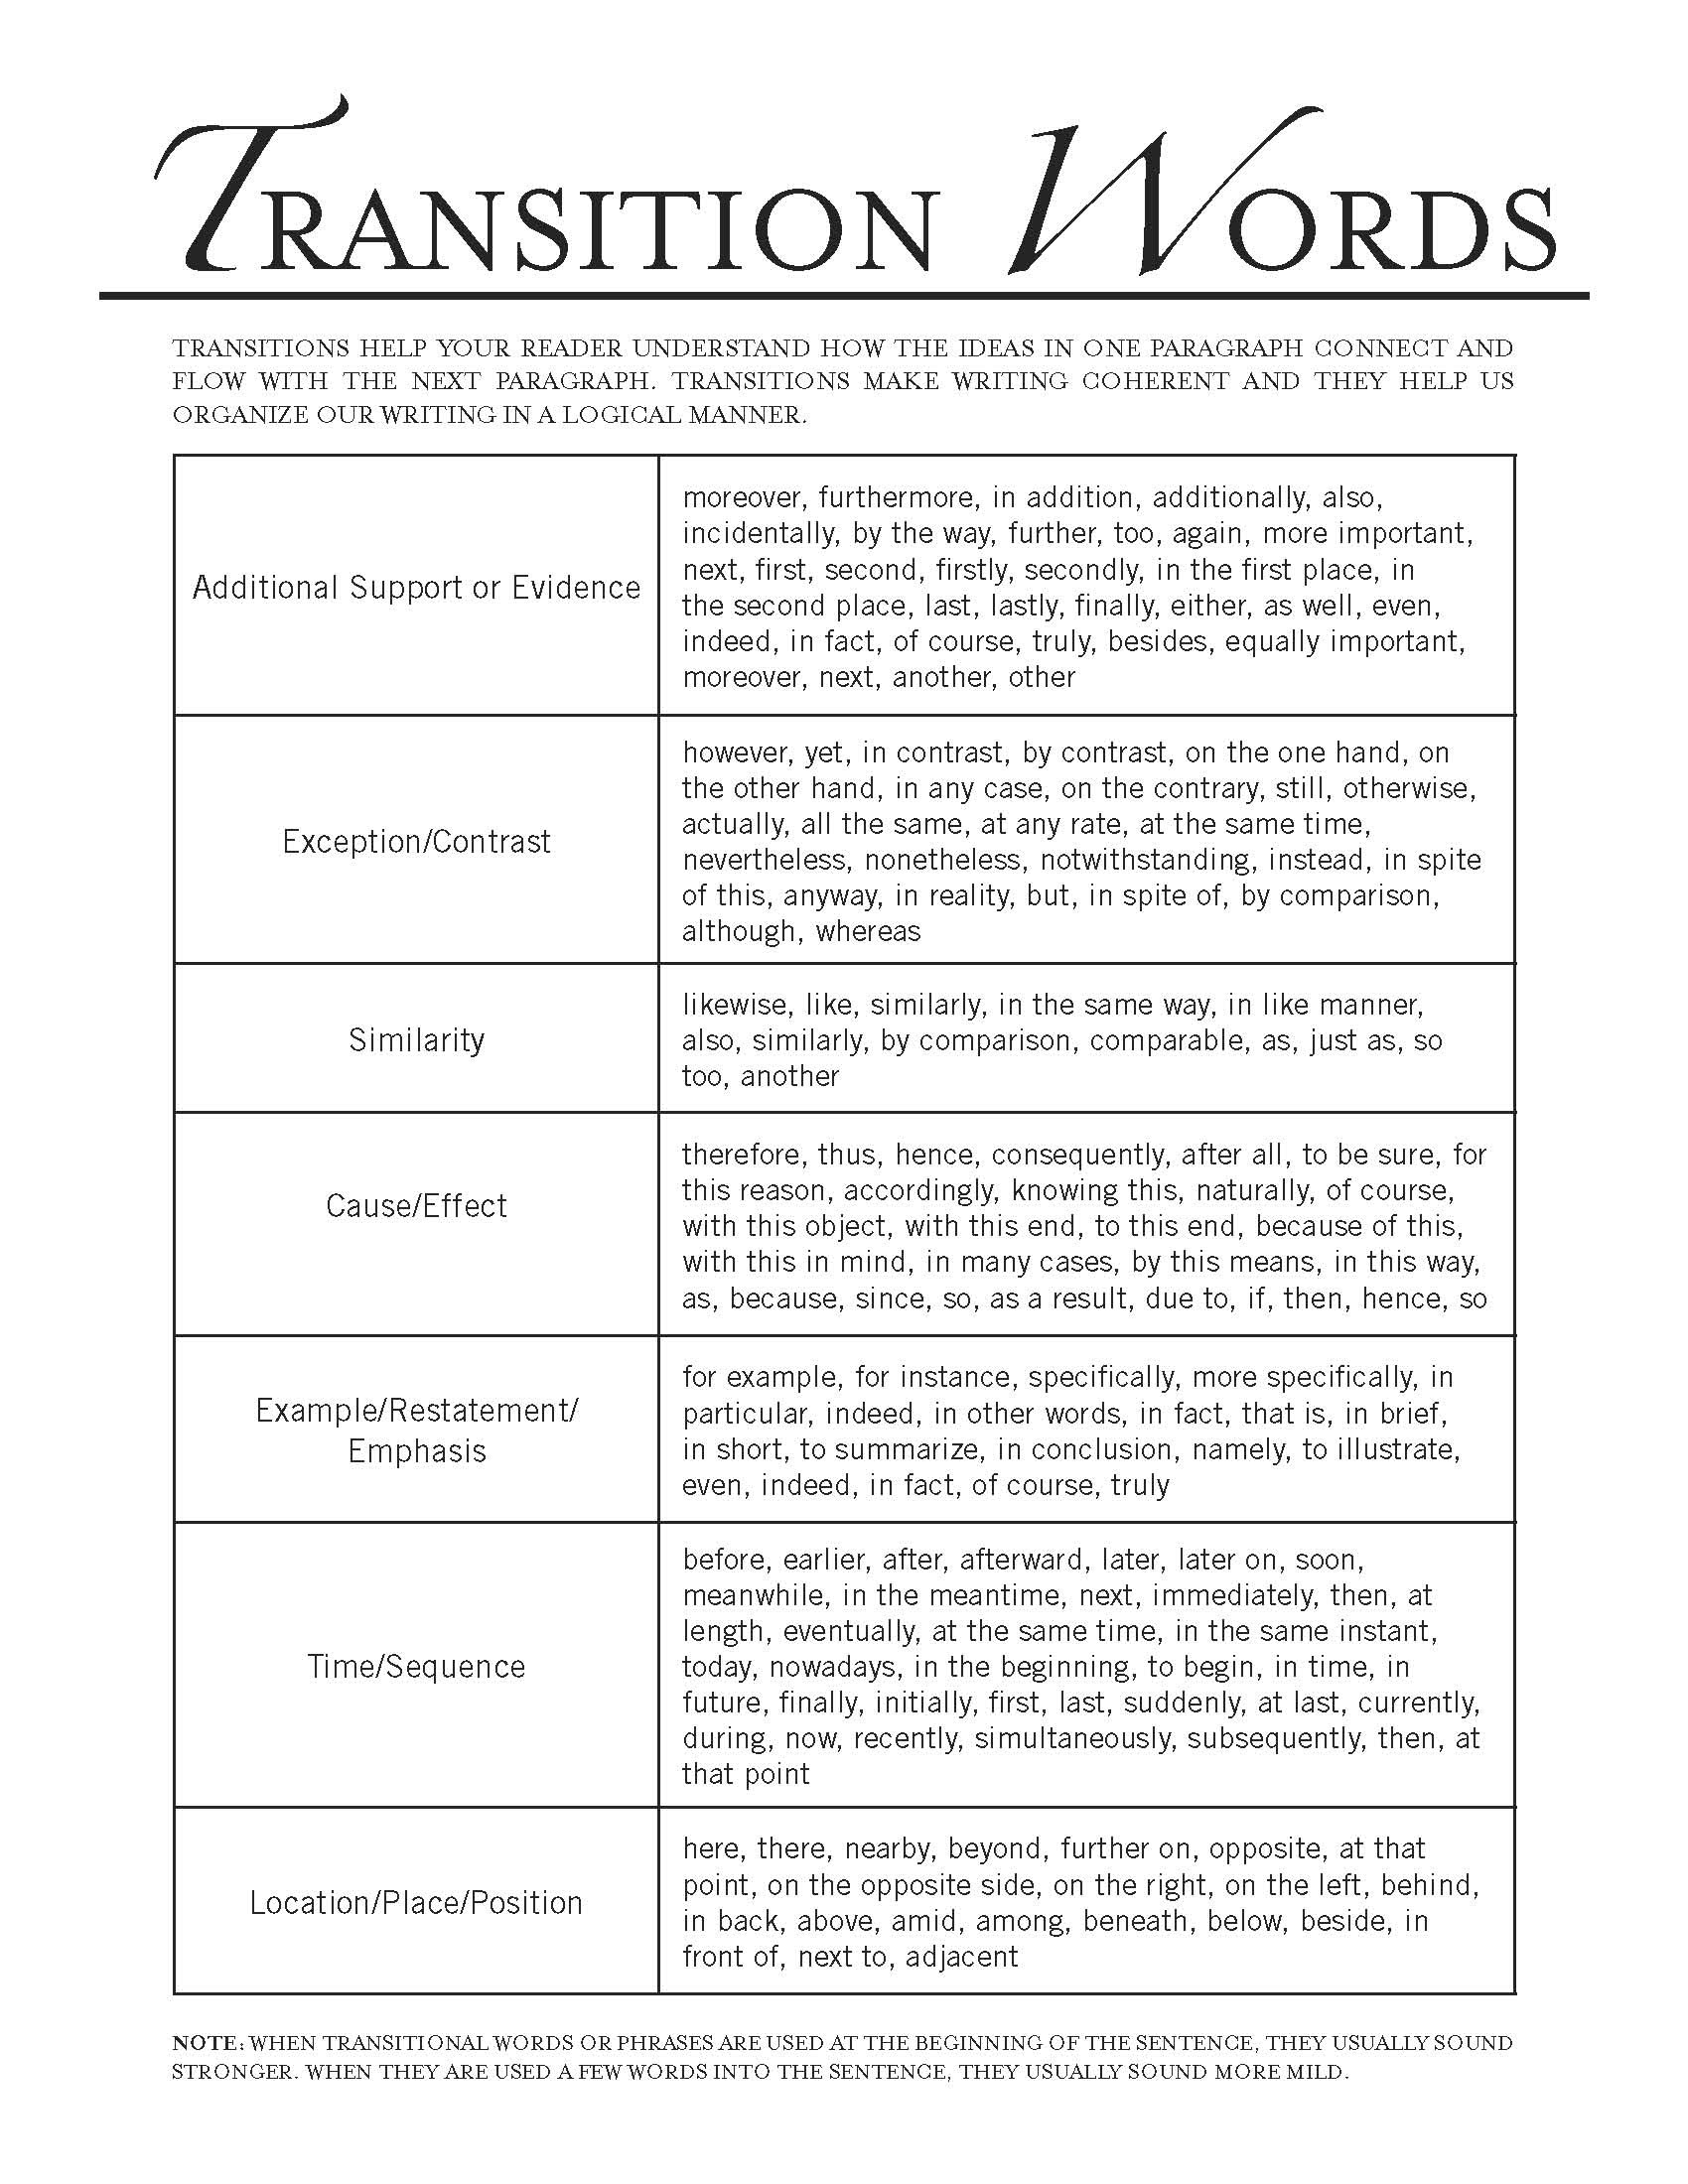 001 Phrases For Essays Academic Introduction Words To End